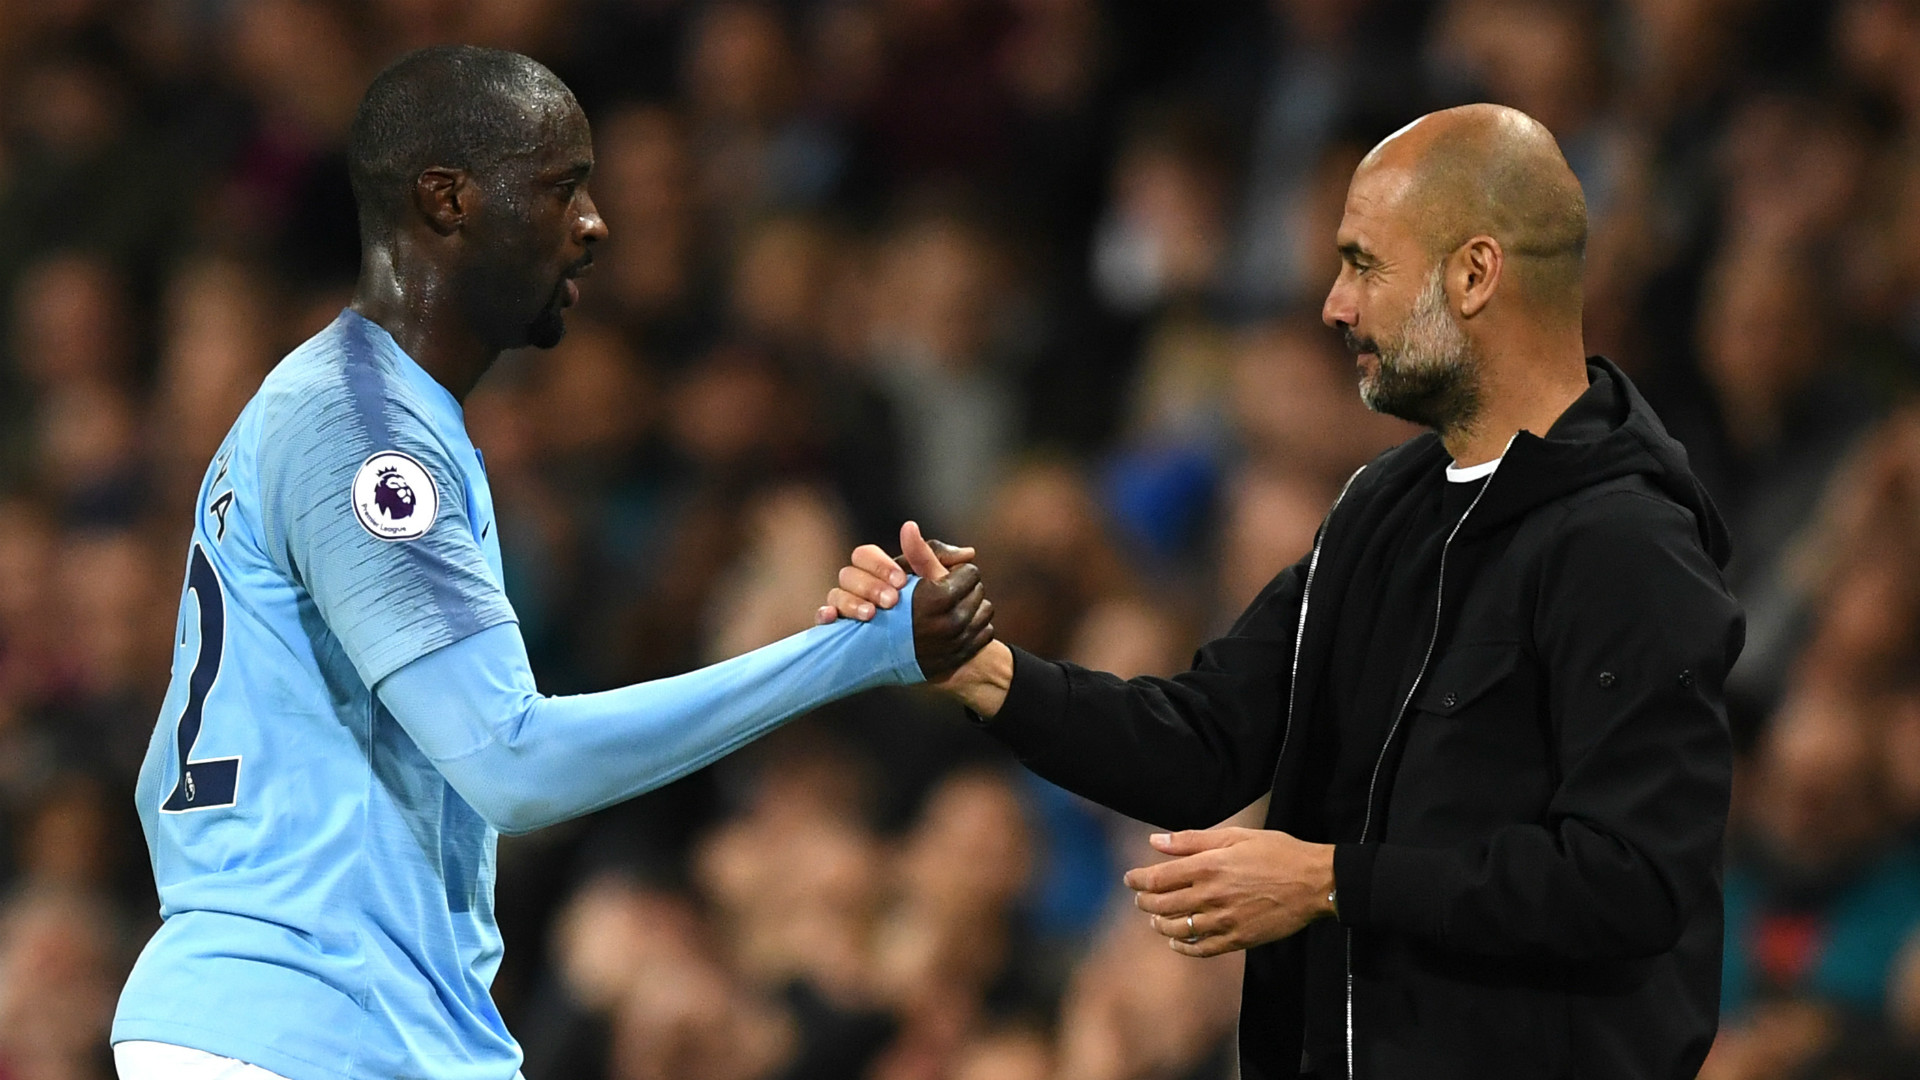 Yaya Toure Makes Huge Racism Claims Against Pep Guardiola | Newslibre